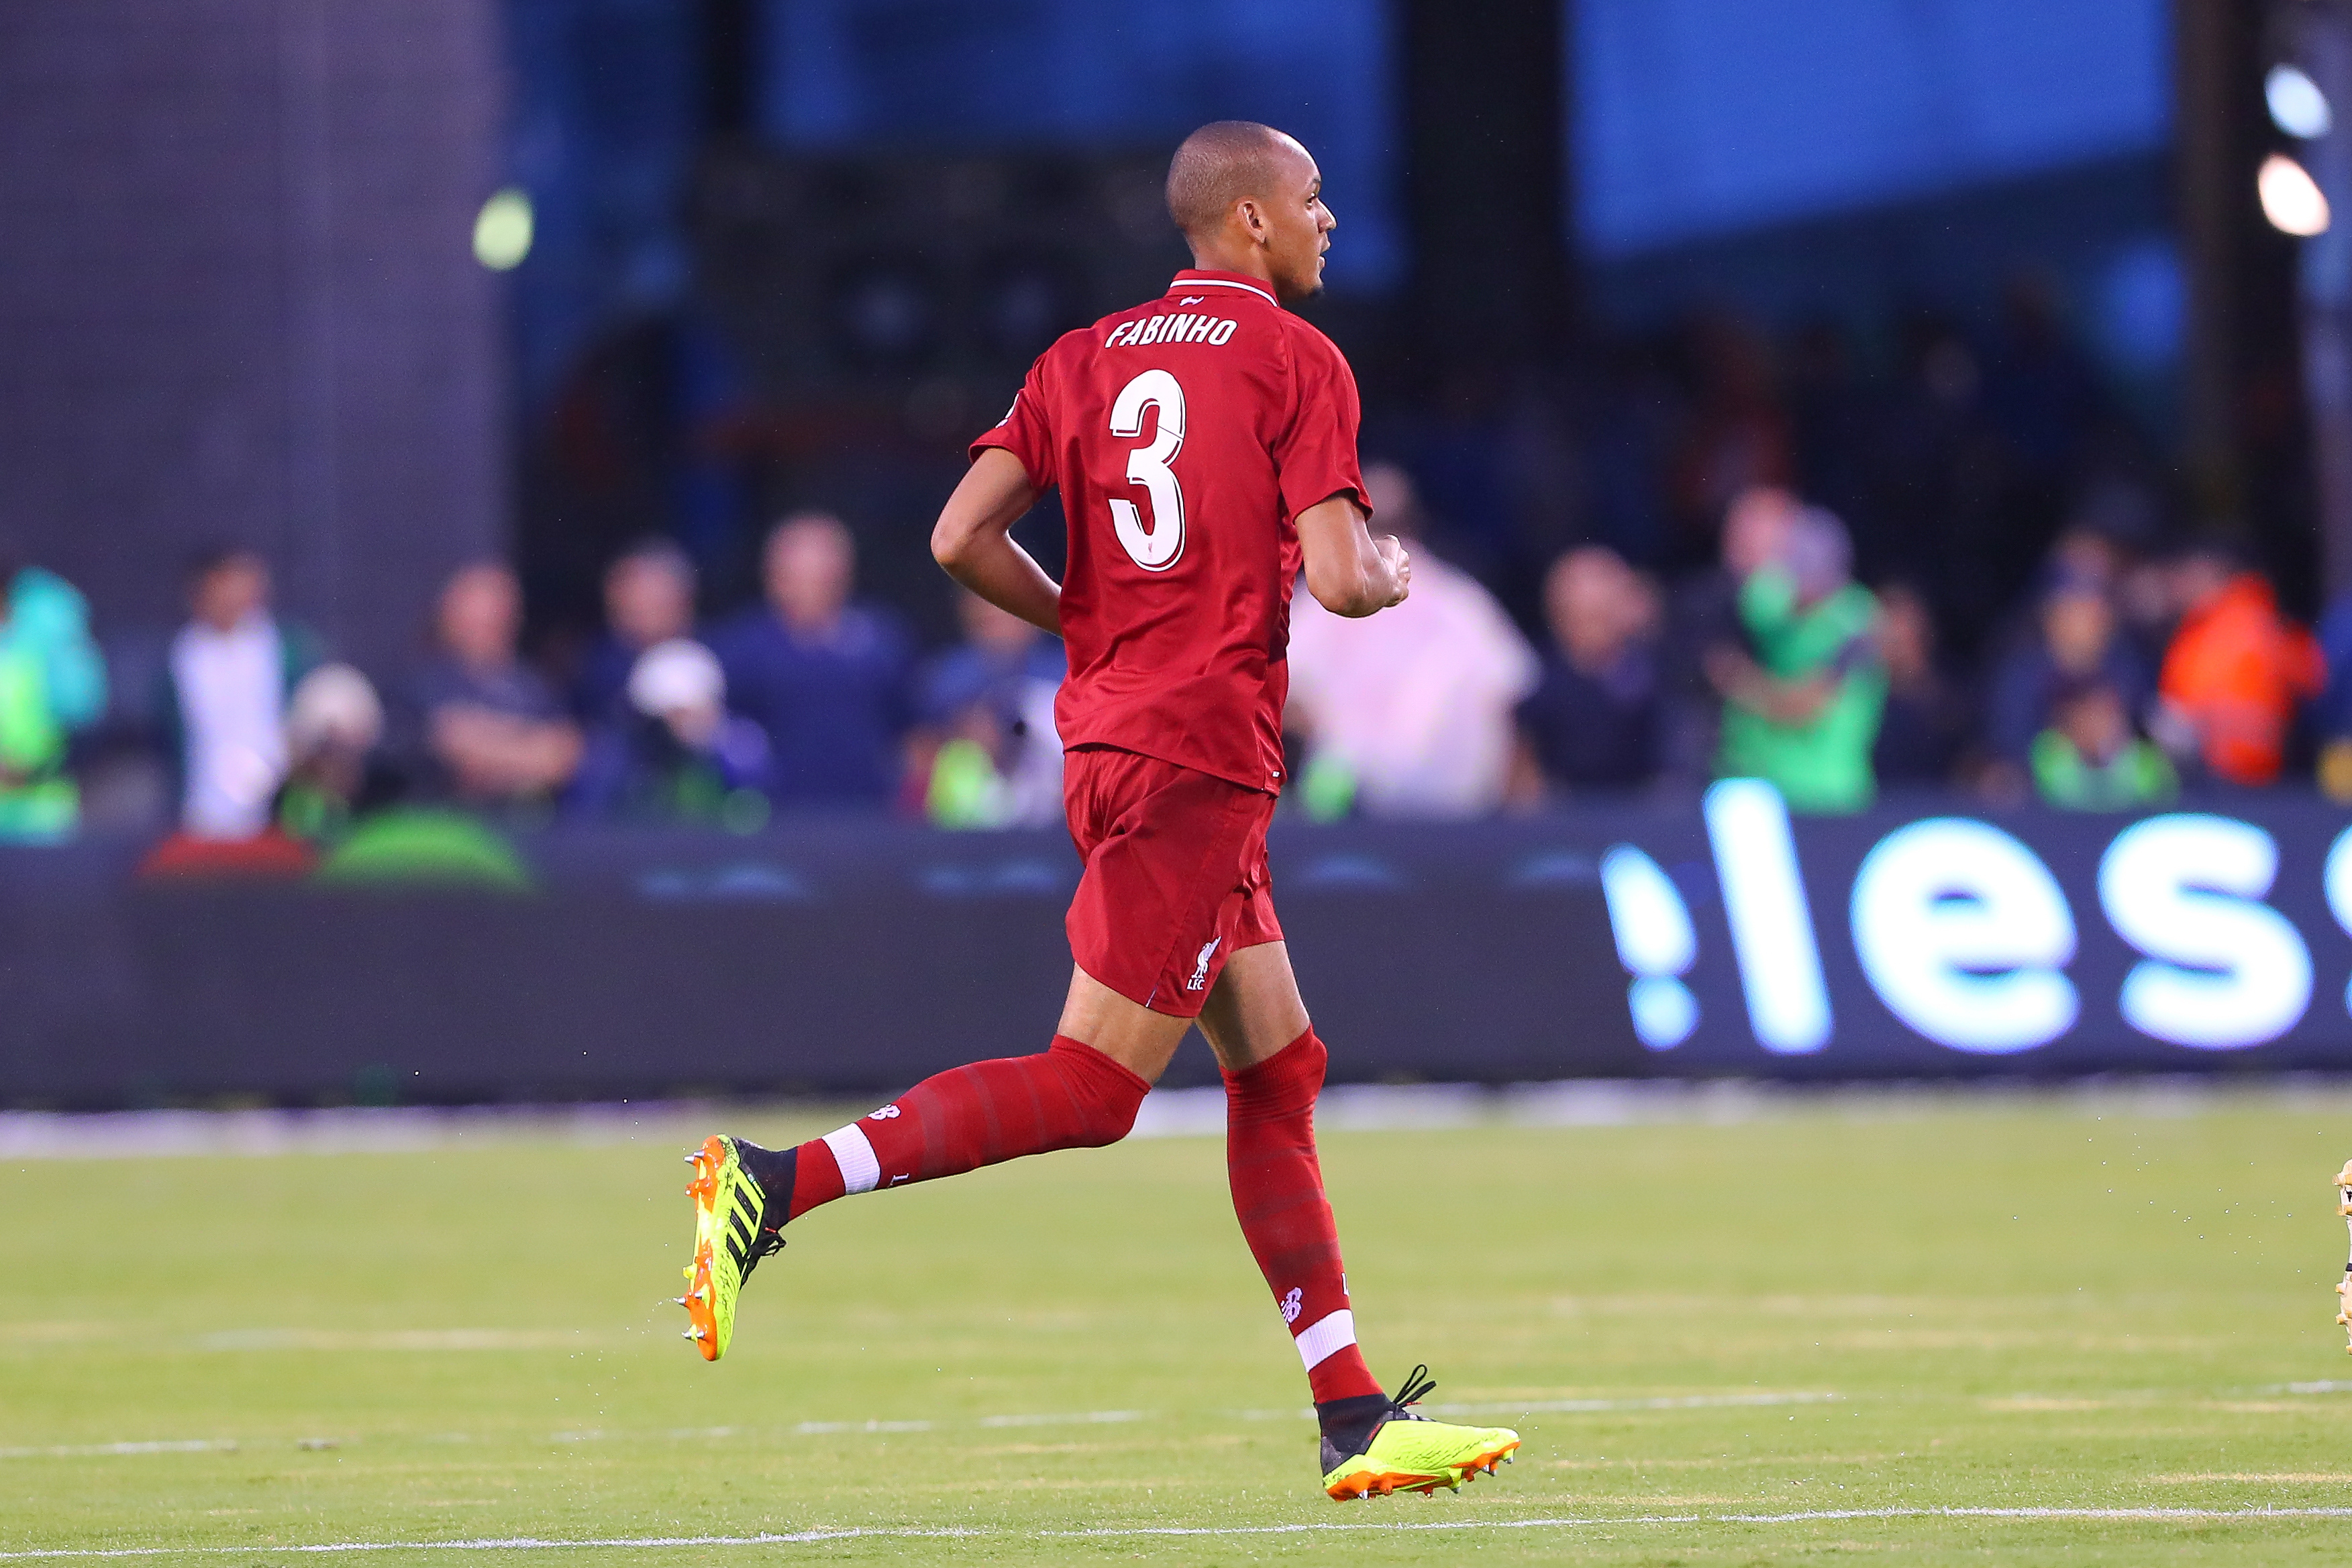 FABINHO FINDS HIS FEET IN COMPETITIVE REDS MIDFIELD